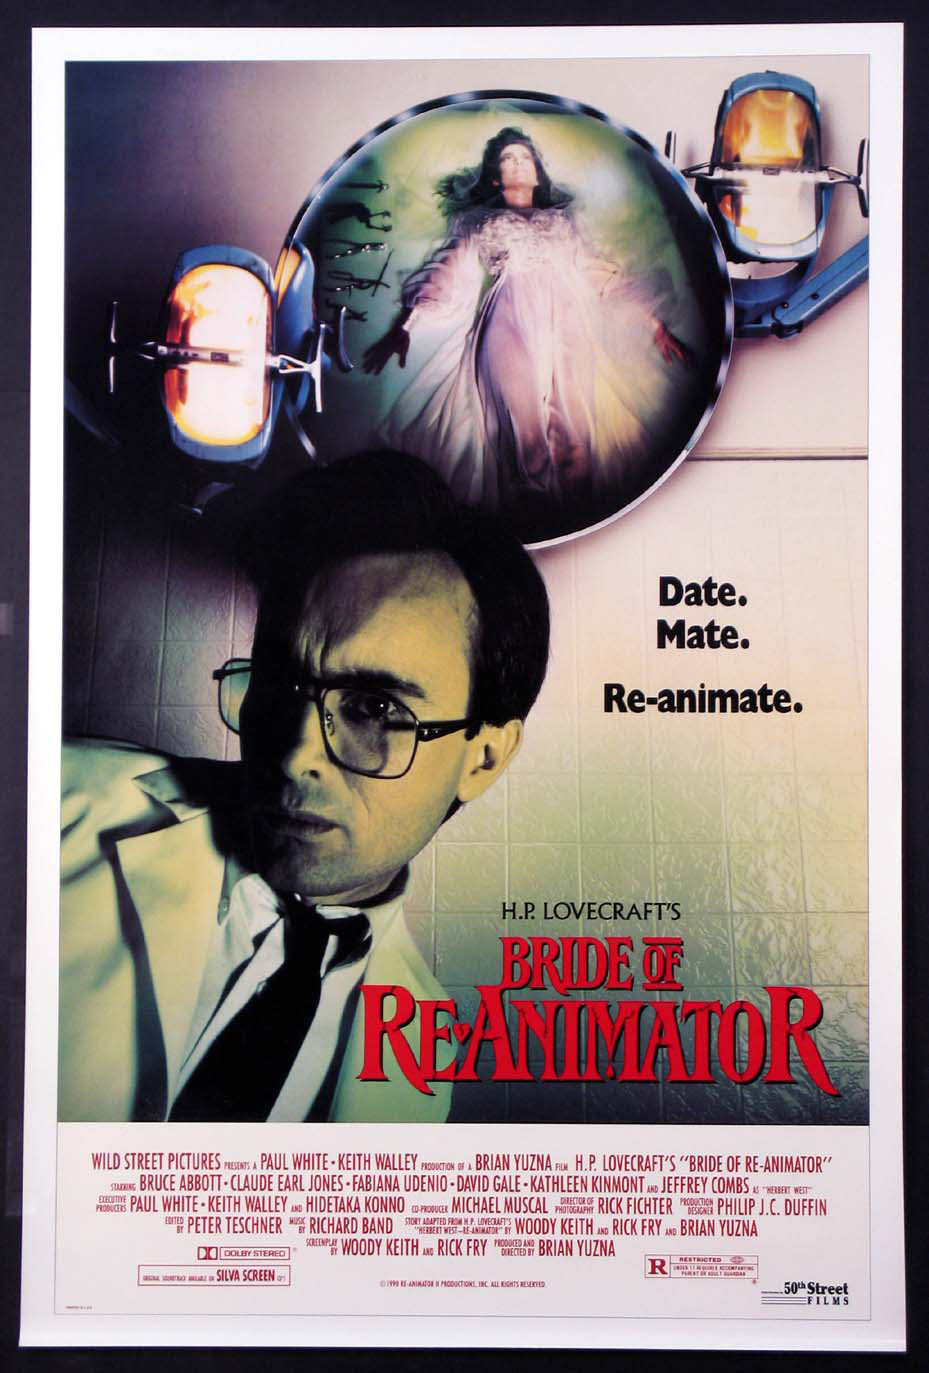 BRIDE OF RE-ANIMATOR (Reanimator) @ FilmPosters.com